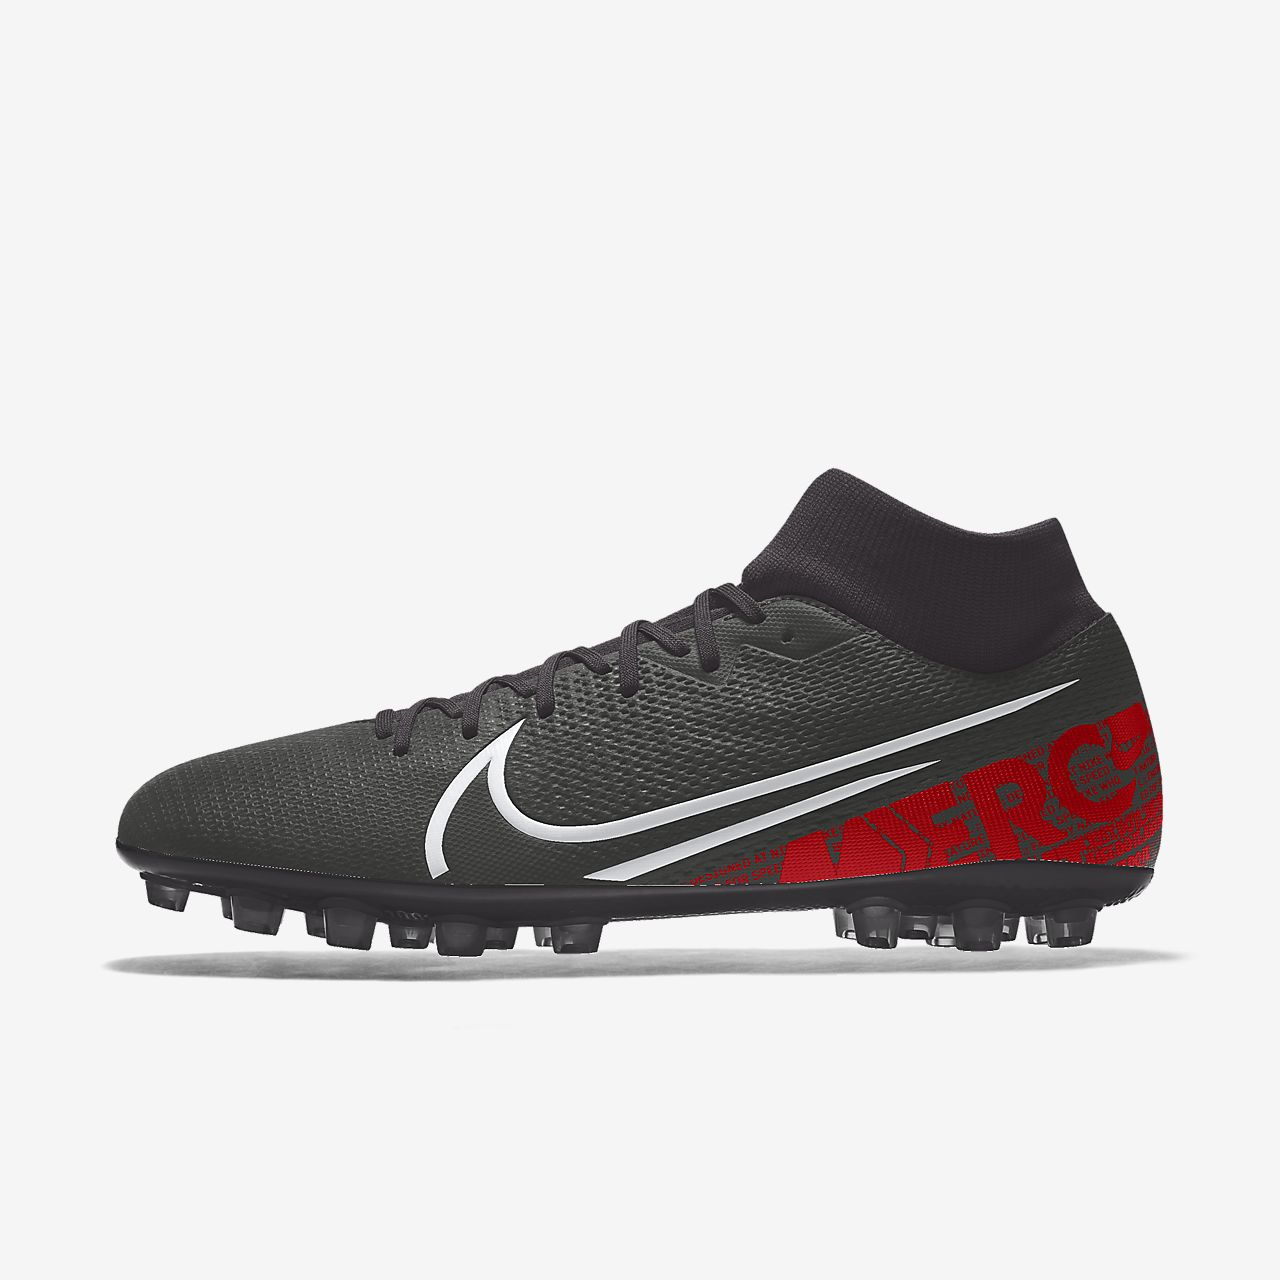 Calzado de fútbol para césped artificial personalizado Nike Mercurial Superfly 7 Academy AG By You